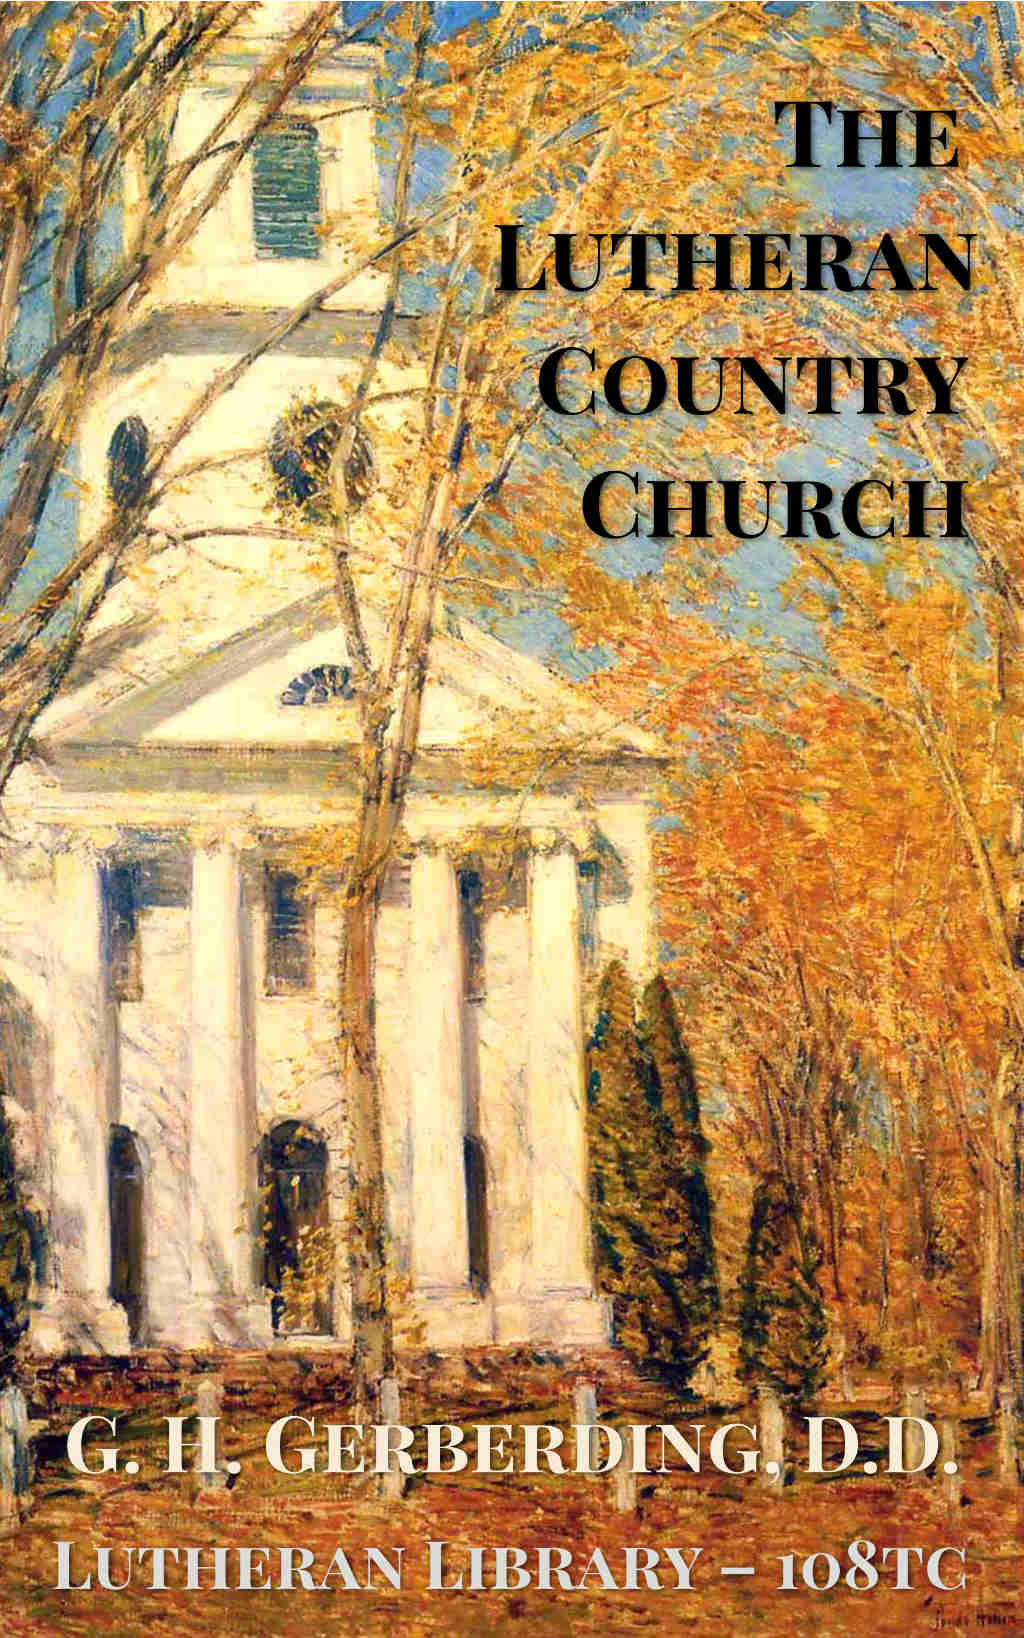 The Lutheran Church in the Country by George H. Gerberding